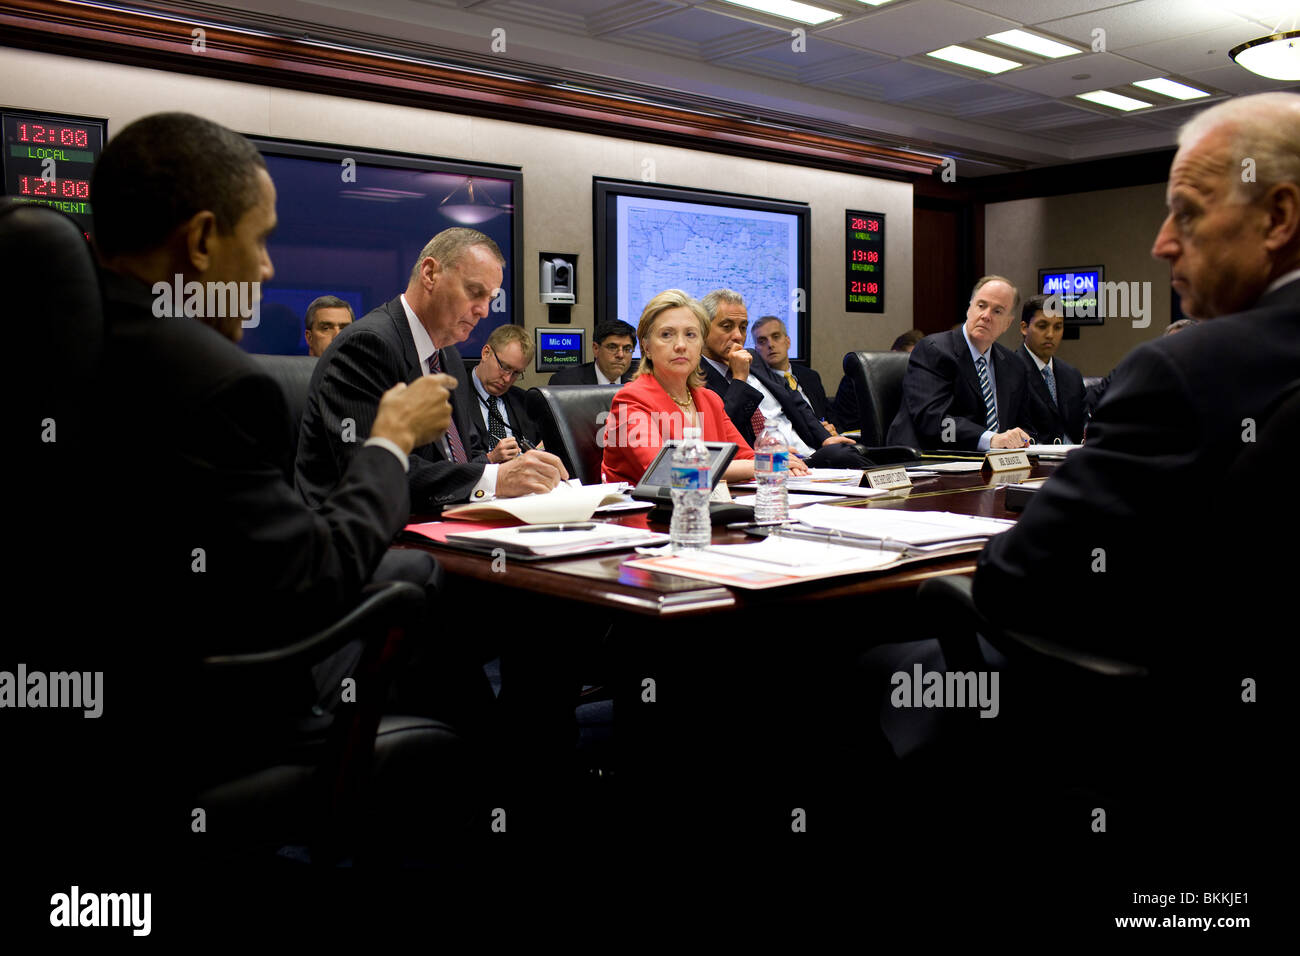 Obama speaks, during a meeting on Afghanistan and Pakistan, in the Situation Room - Stock Image